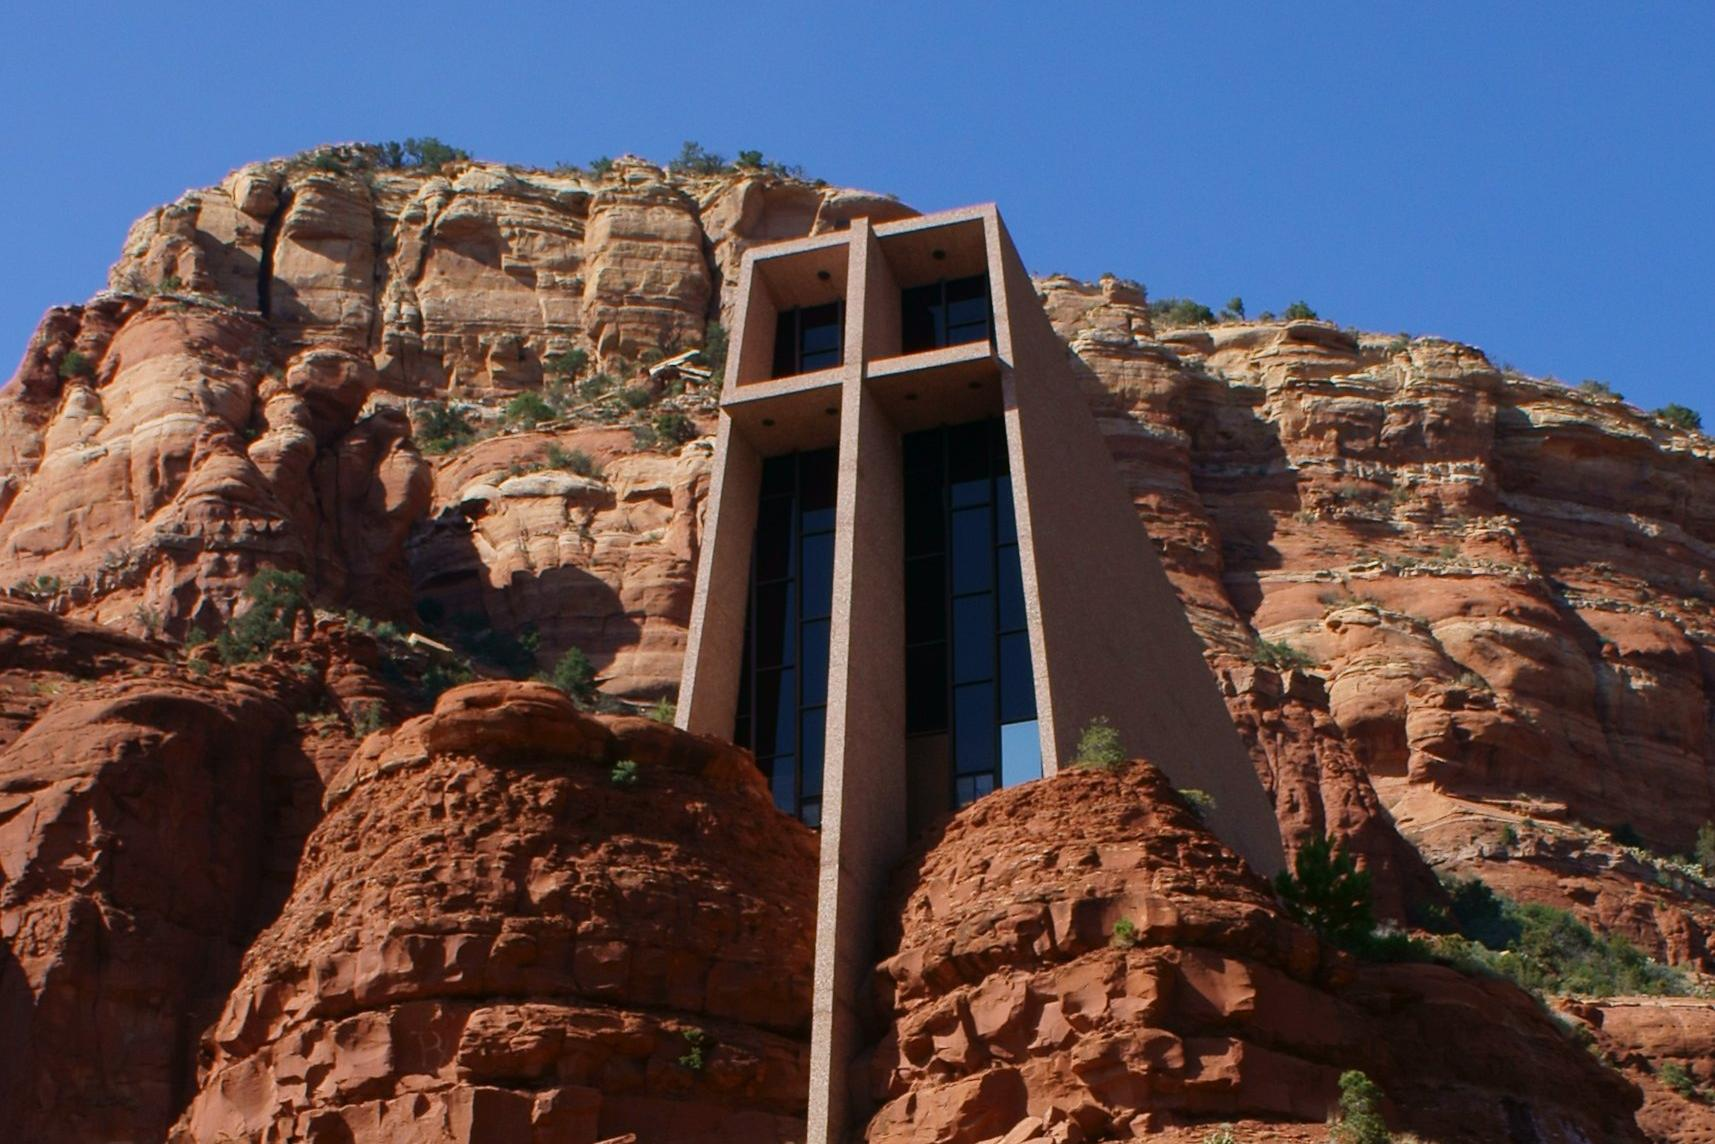 1956_usa_chapel_of_the_holy_cross_sedona_az_richard_hein_august_k._strotz.jpg